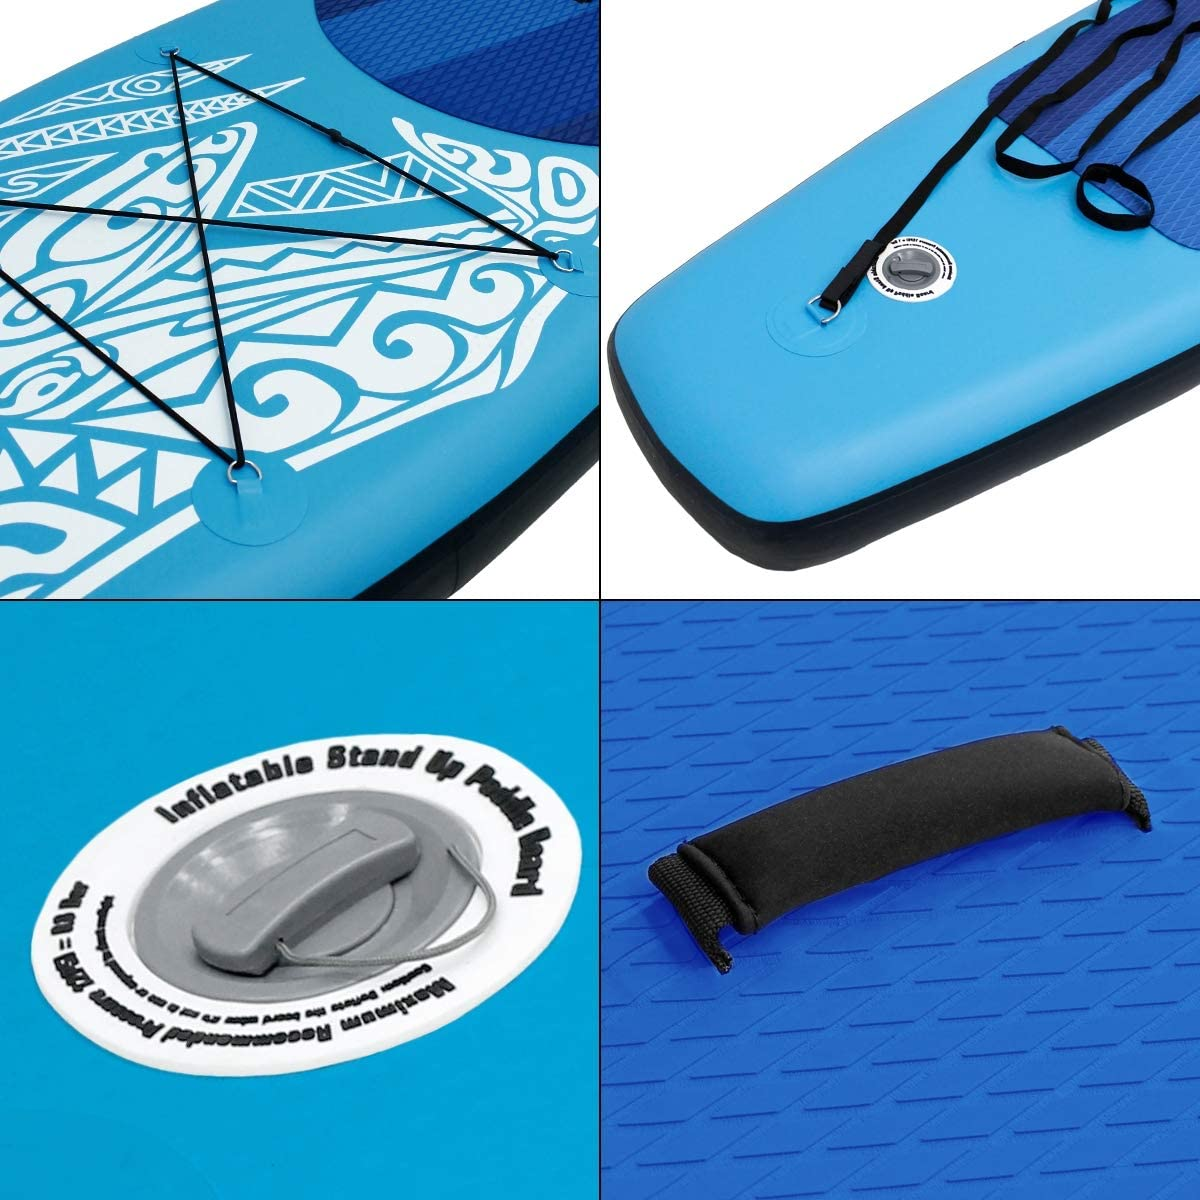 ECD Germany 10ft 5 // 320cm Makani Inflatable Stand up paddle all-round board SUP paddlers surfboard set inc paddle air pump backpack and leash blue for all skill levels kids adult beginners